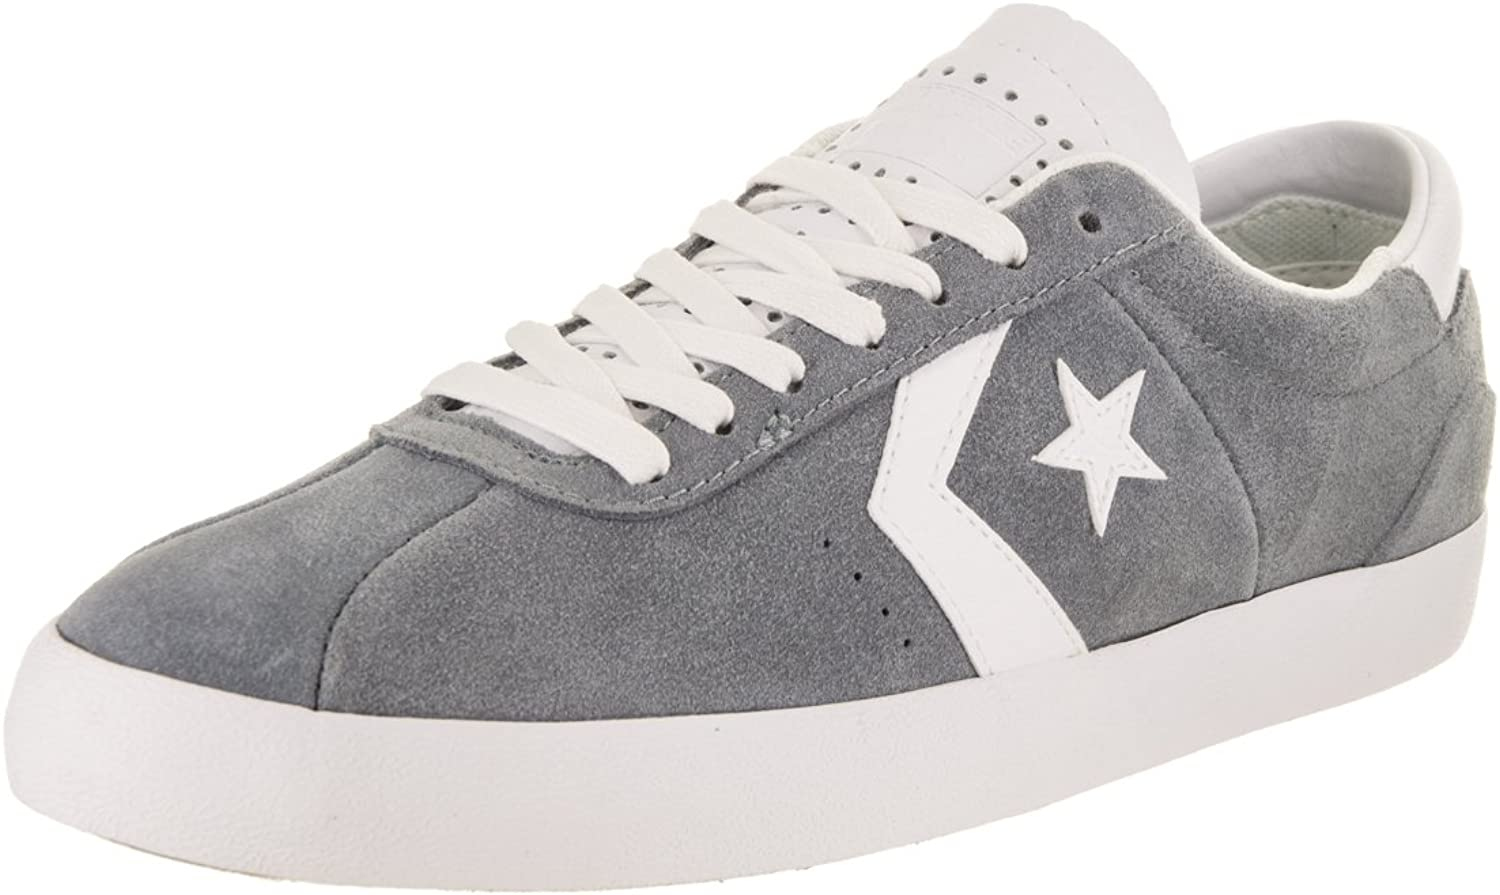 Converse Unisex Breakpoint Pro Ox Casual shoes